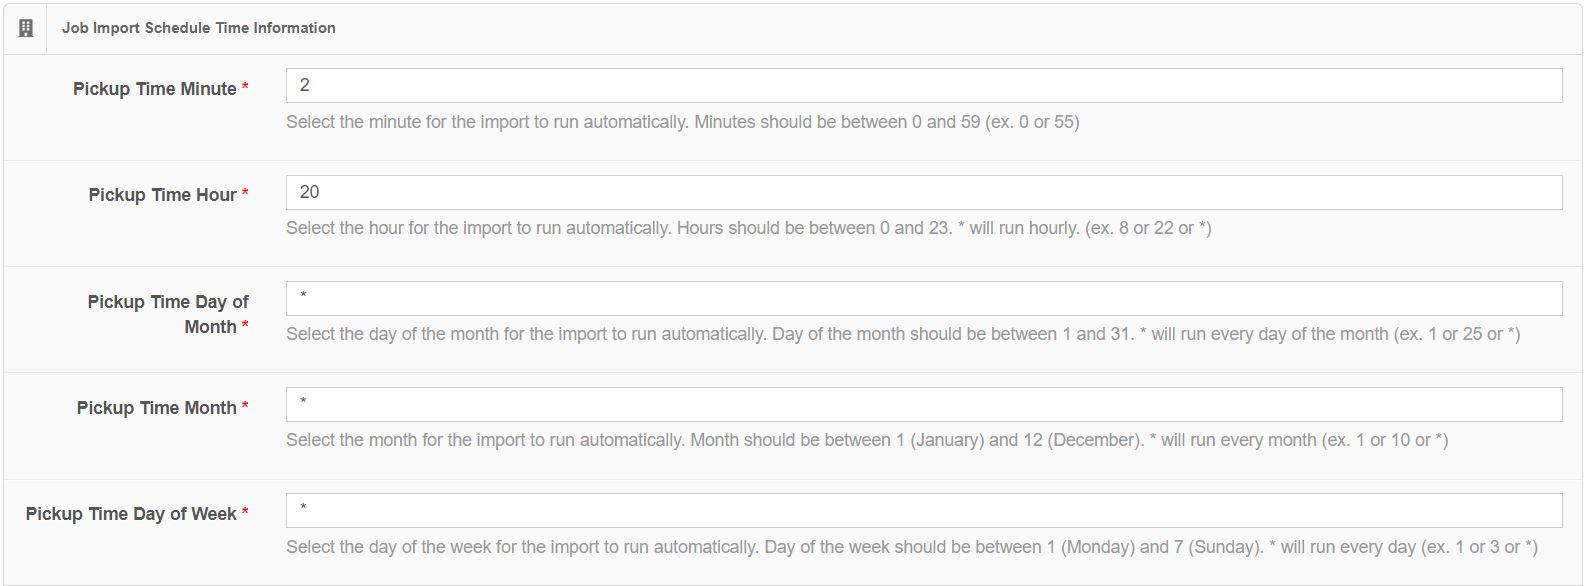 Job Import Schedule Time Information